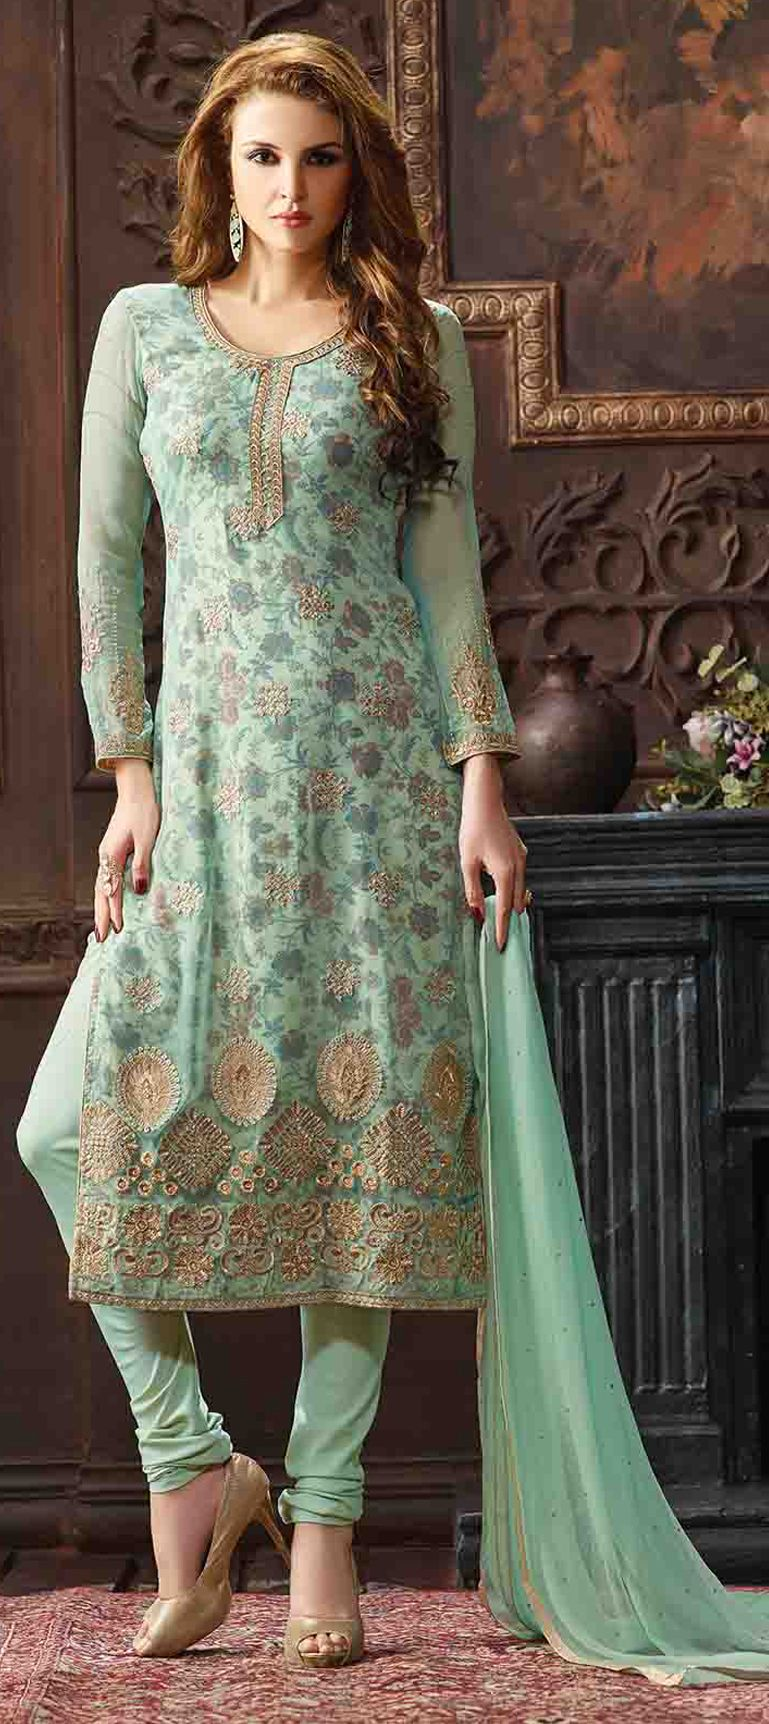 de269ee7a8 472504: Green color family unstitched Party Wear Salwar Kameez, Printed Salwar  Kameez .